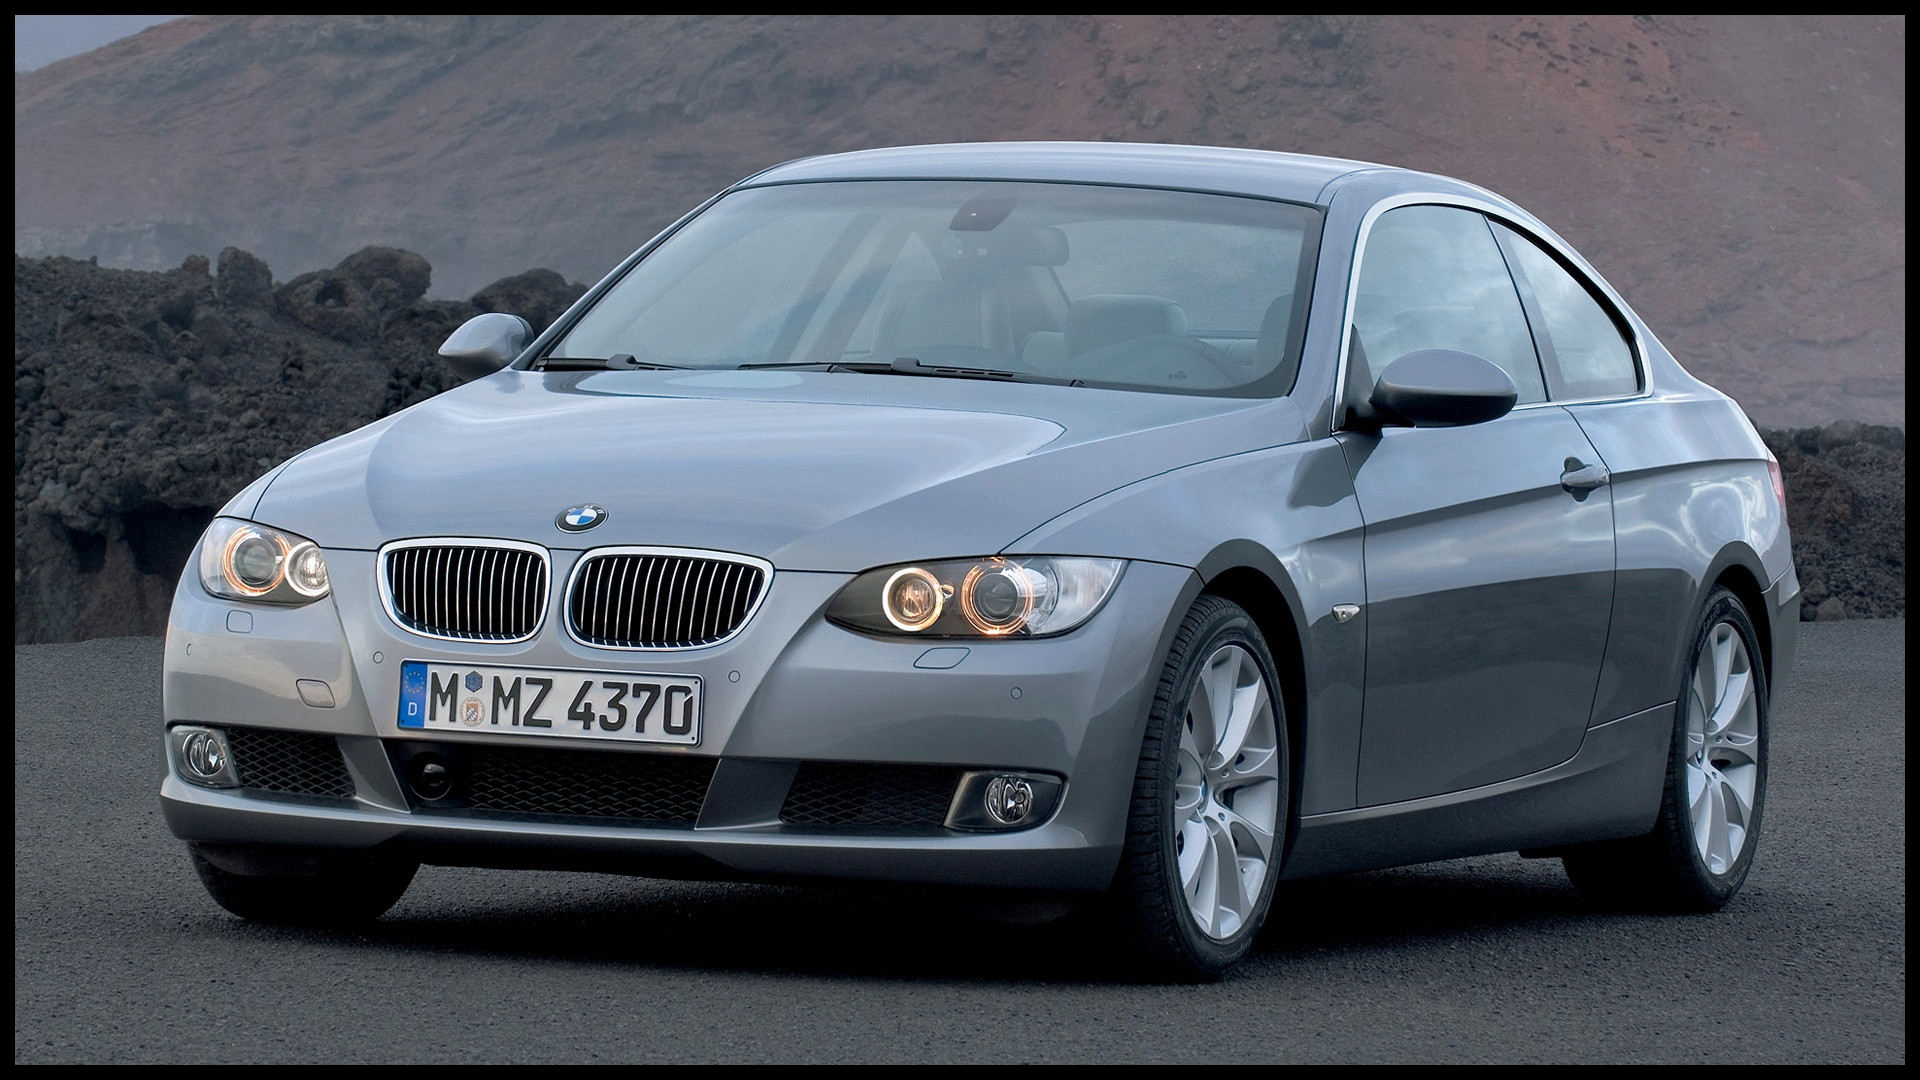 2007 Bmw 335i Coupe Hd Best Bmw 335i Wallpaper Hd